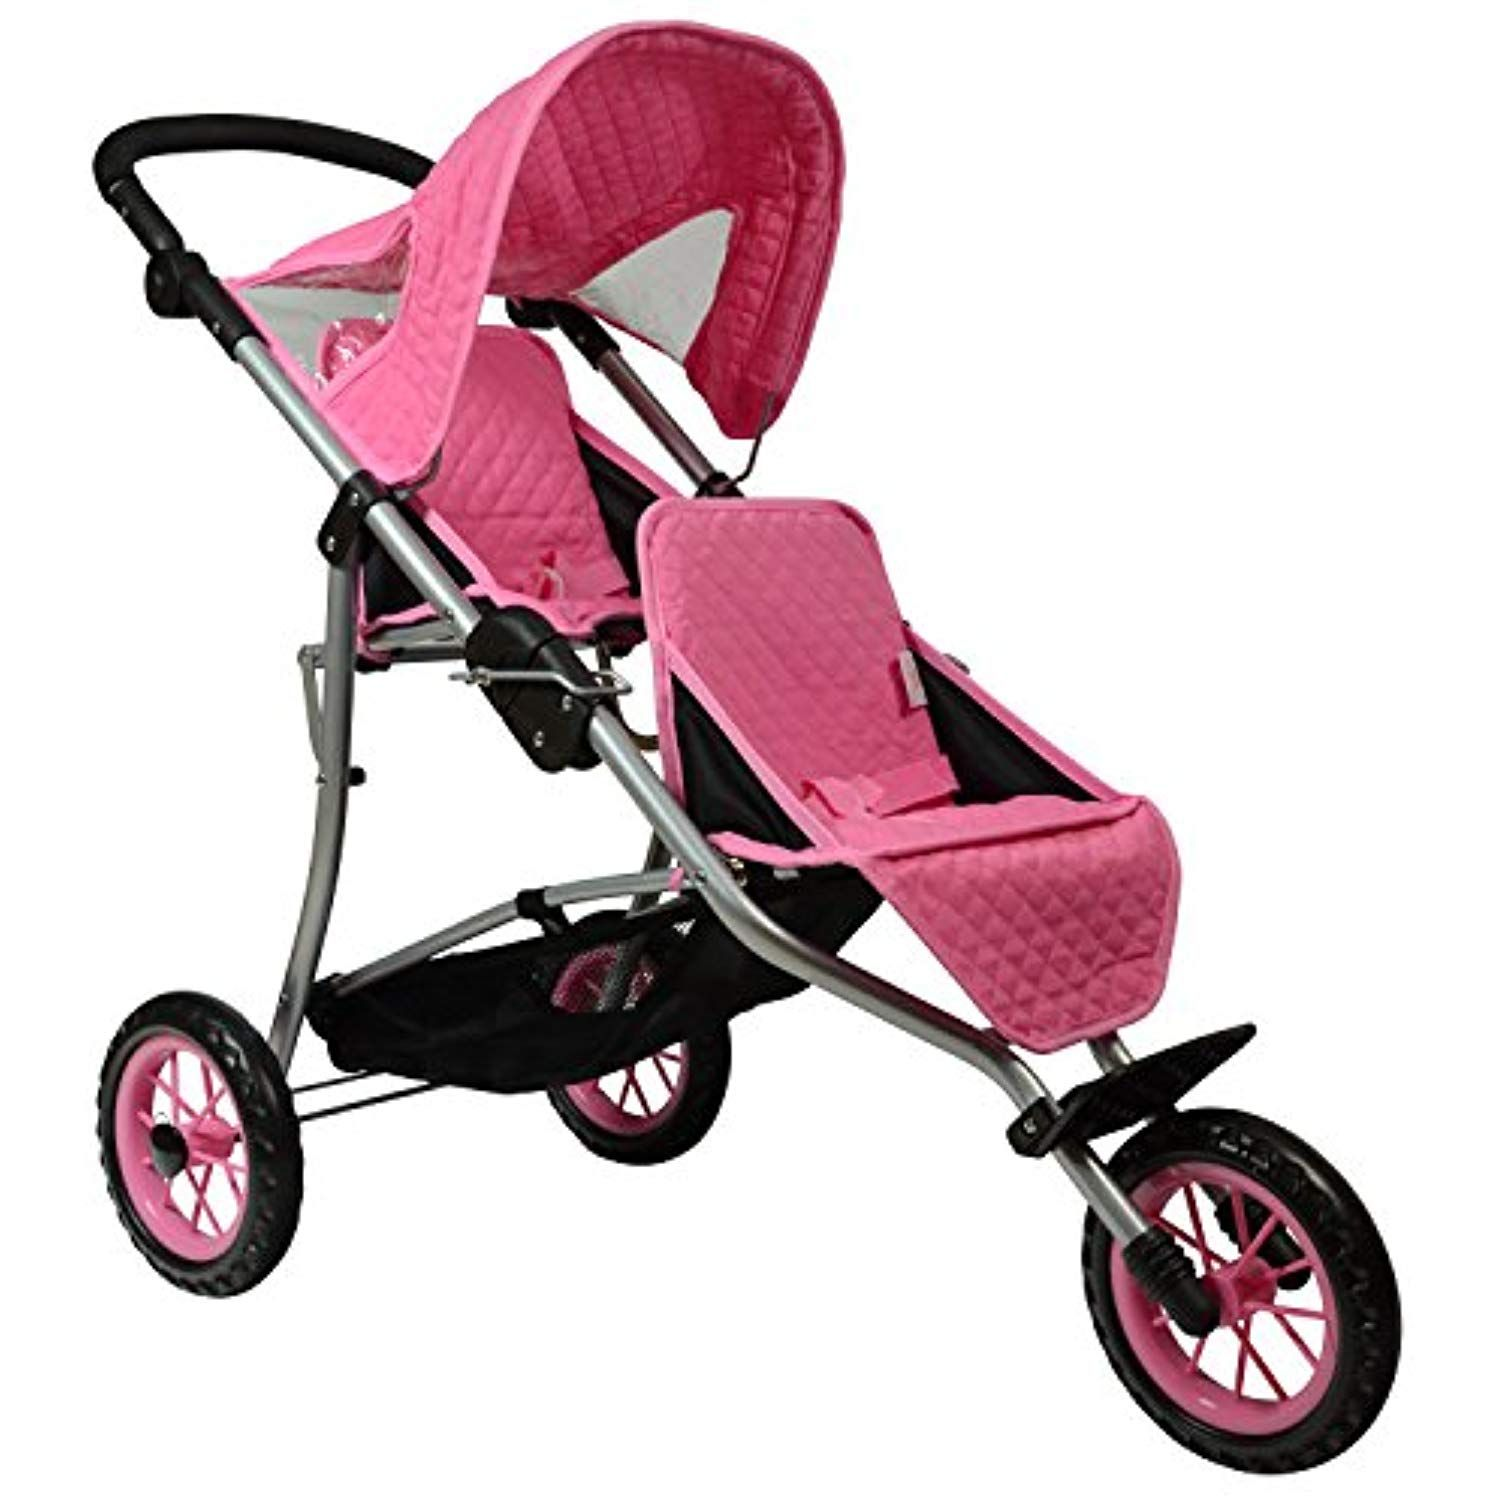 The New York Doll Collection Twin Jogging Stroller Fits For 18 Inch